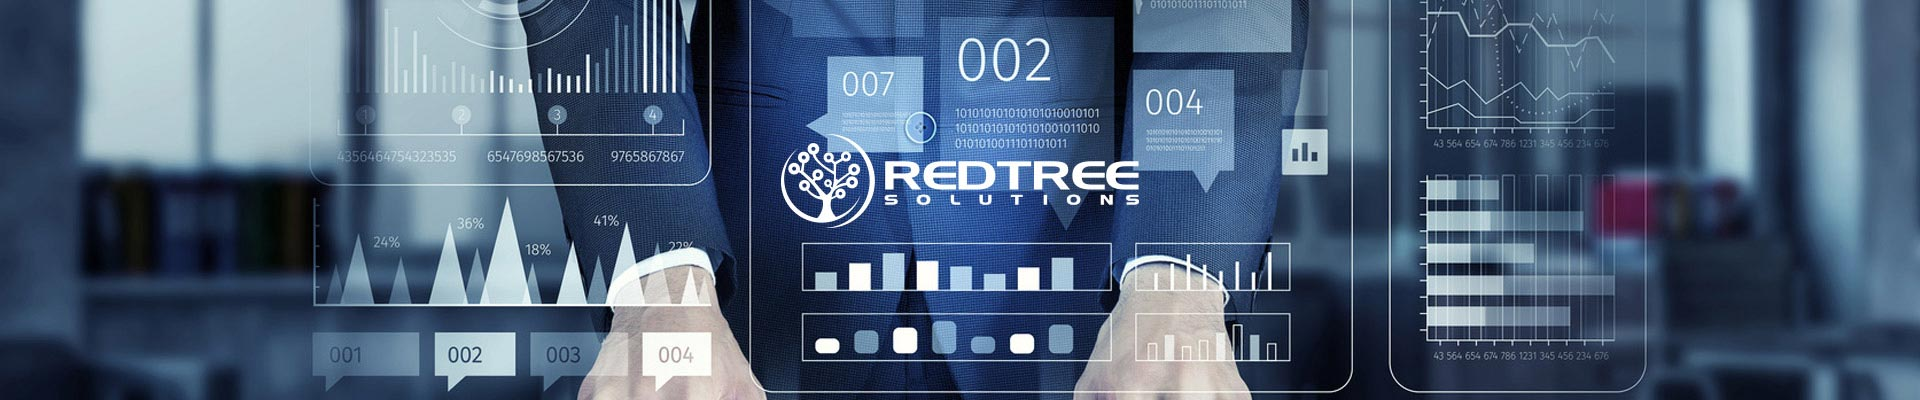 s-redtree-news